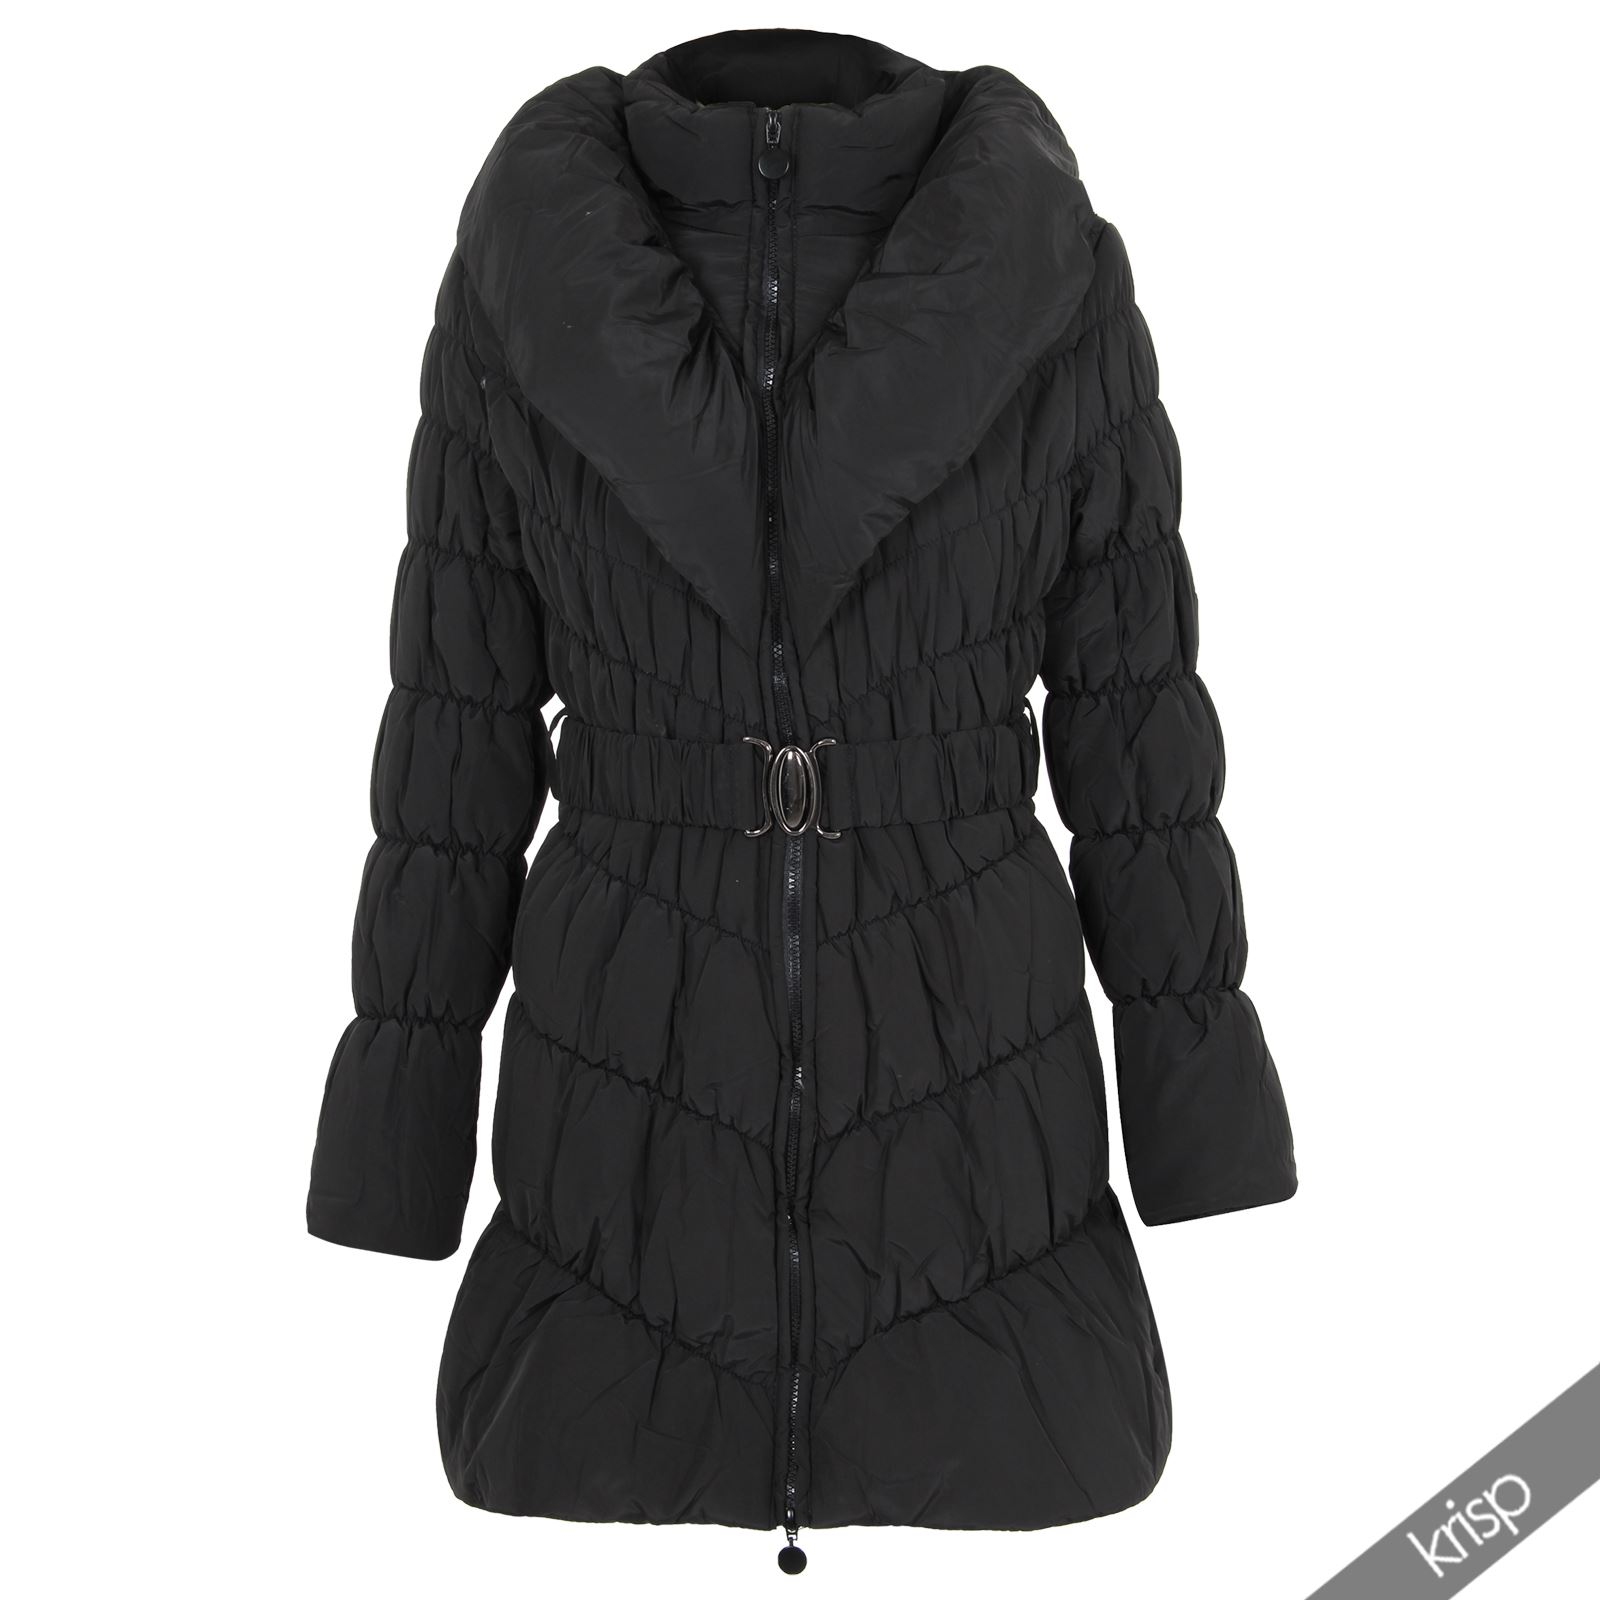 Fitted winter coats for women